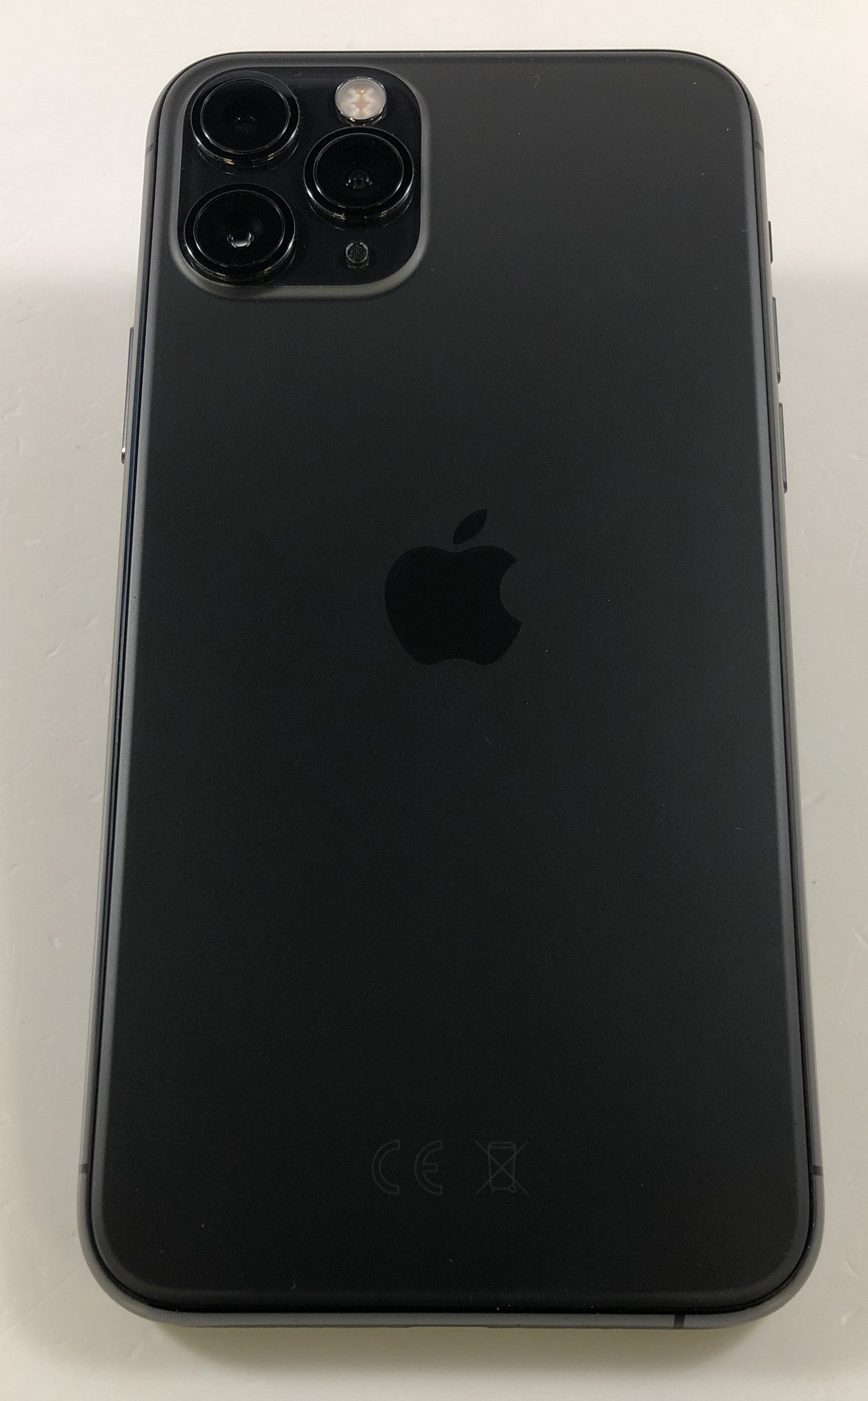 iPhone 11 Pro 512GB, 512GB, Space Gray, bild 2